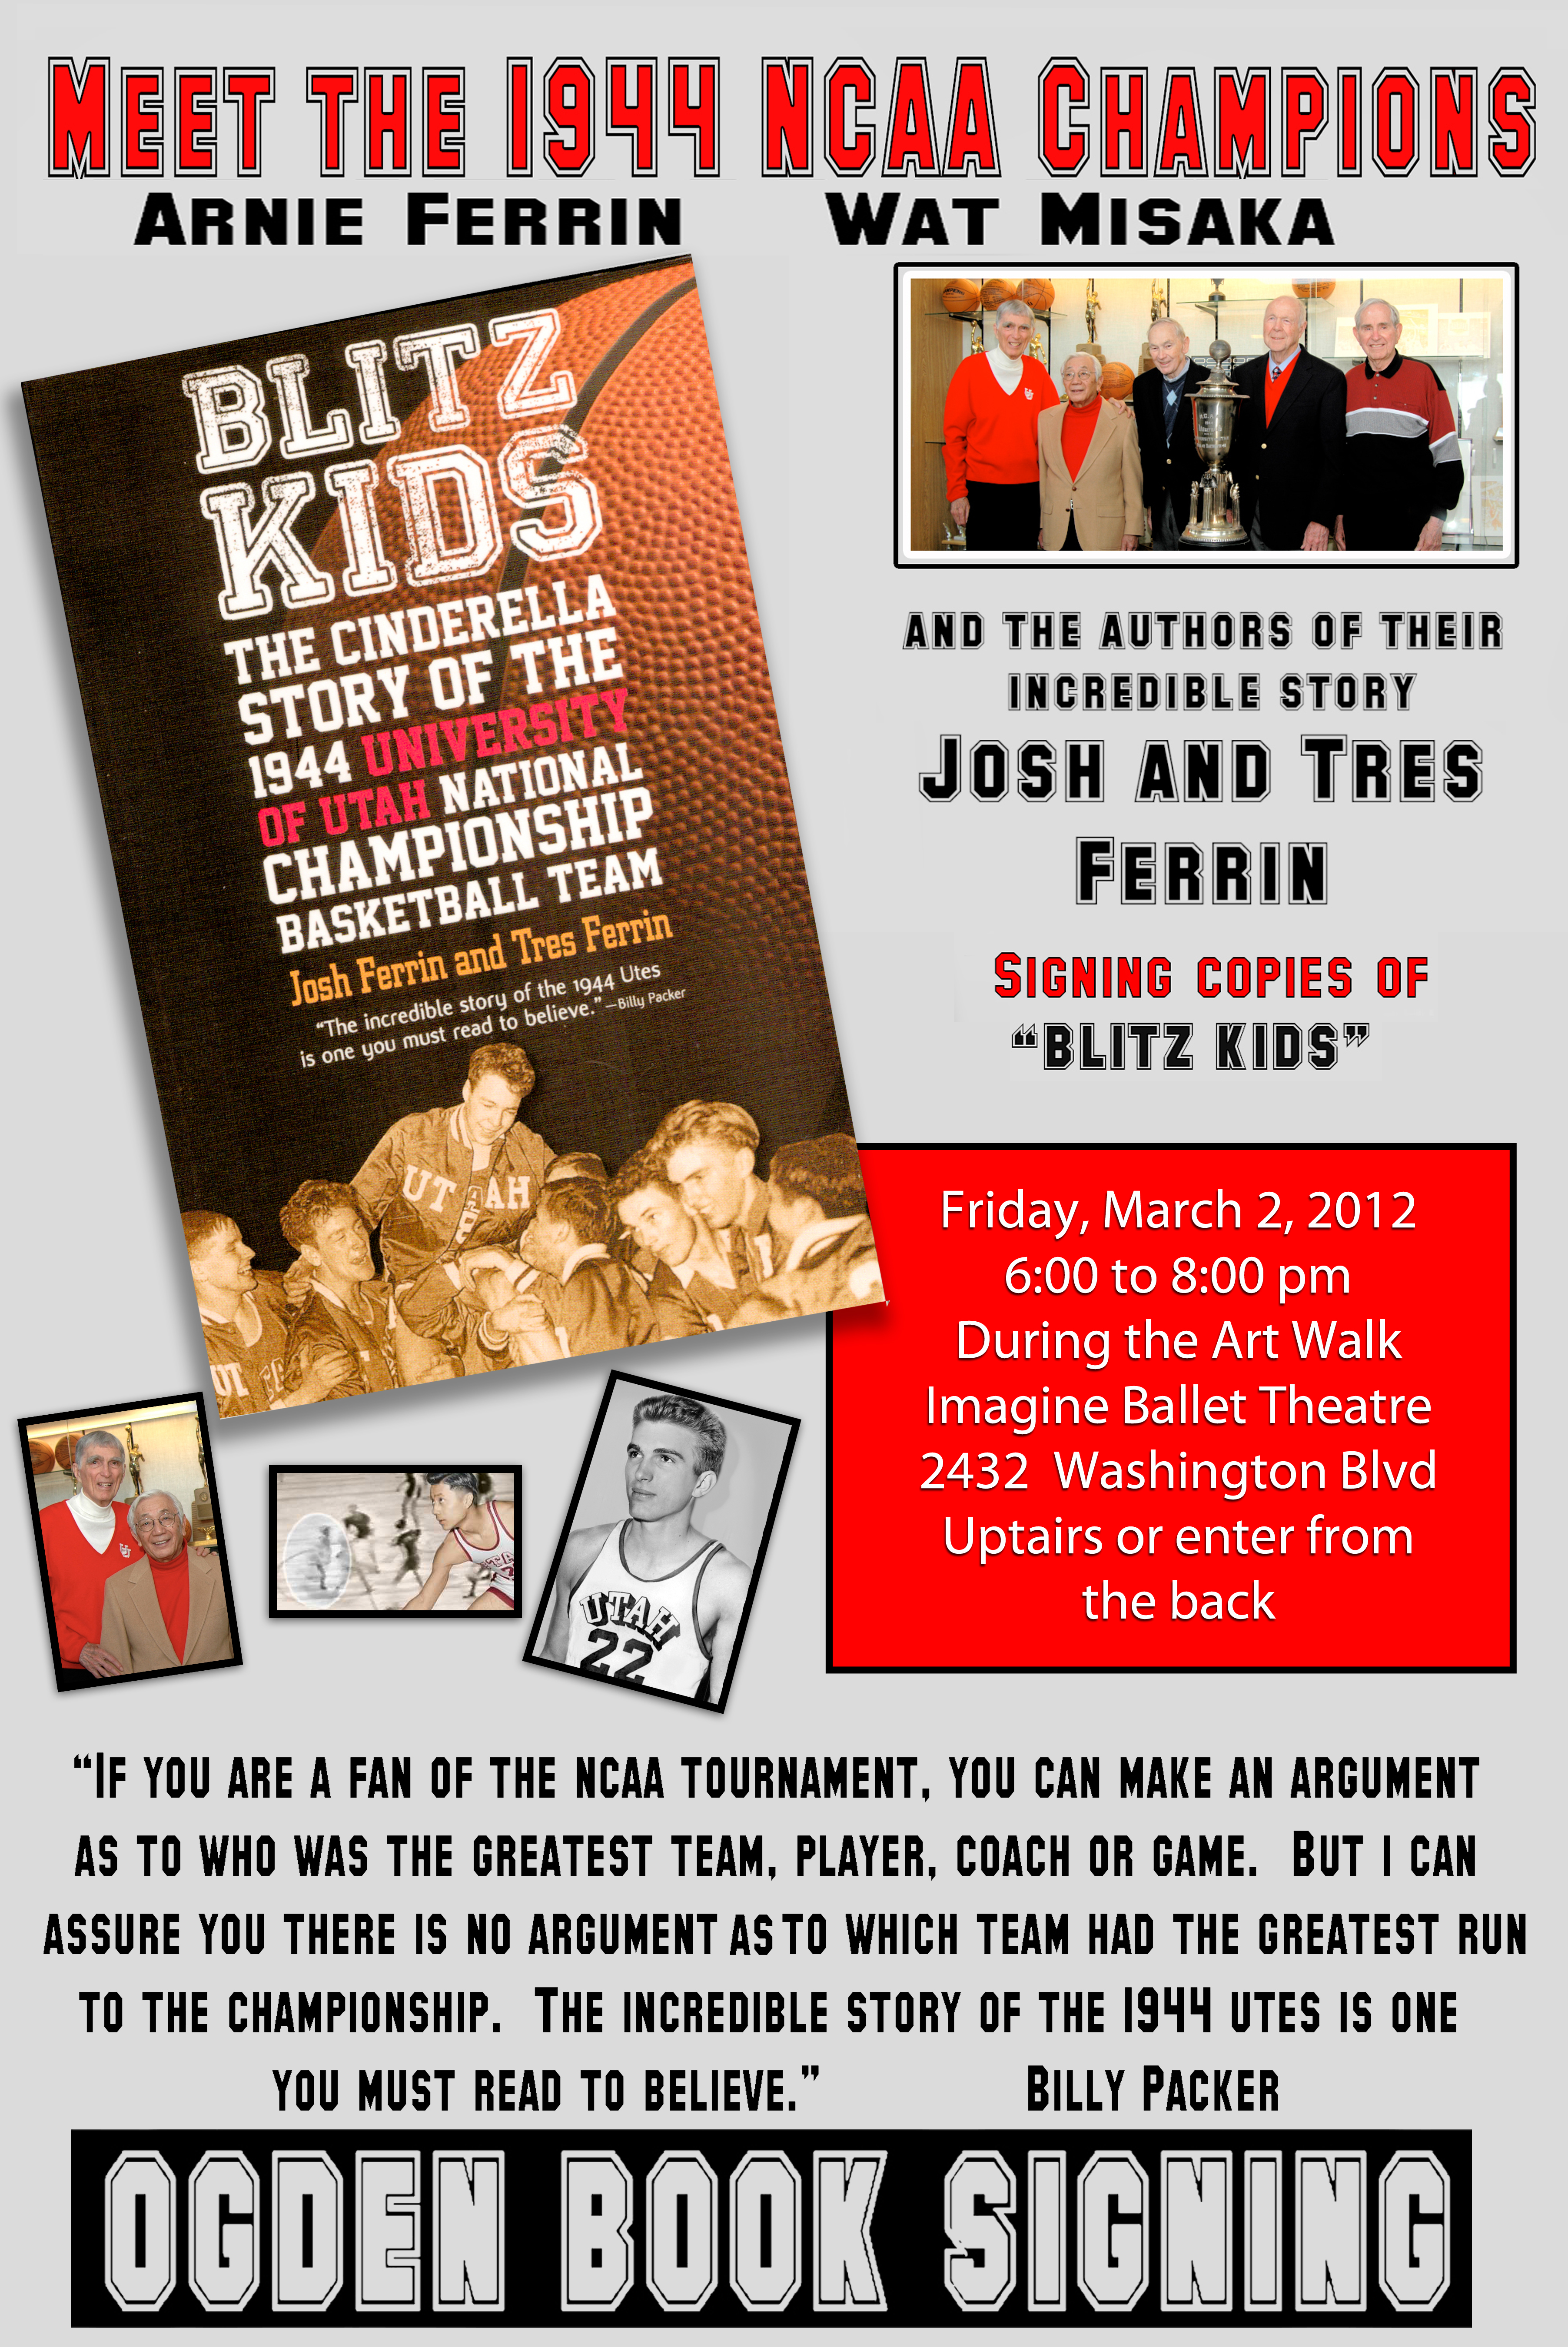 The Art Walk will feature the Sports Art of Paul Ashton & Authors Josh & Tres Ferrin